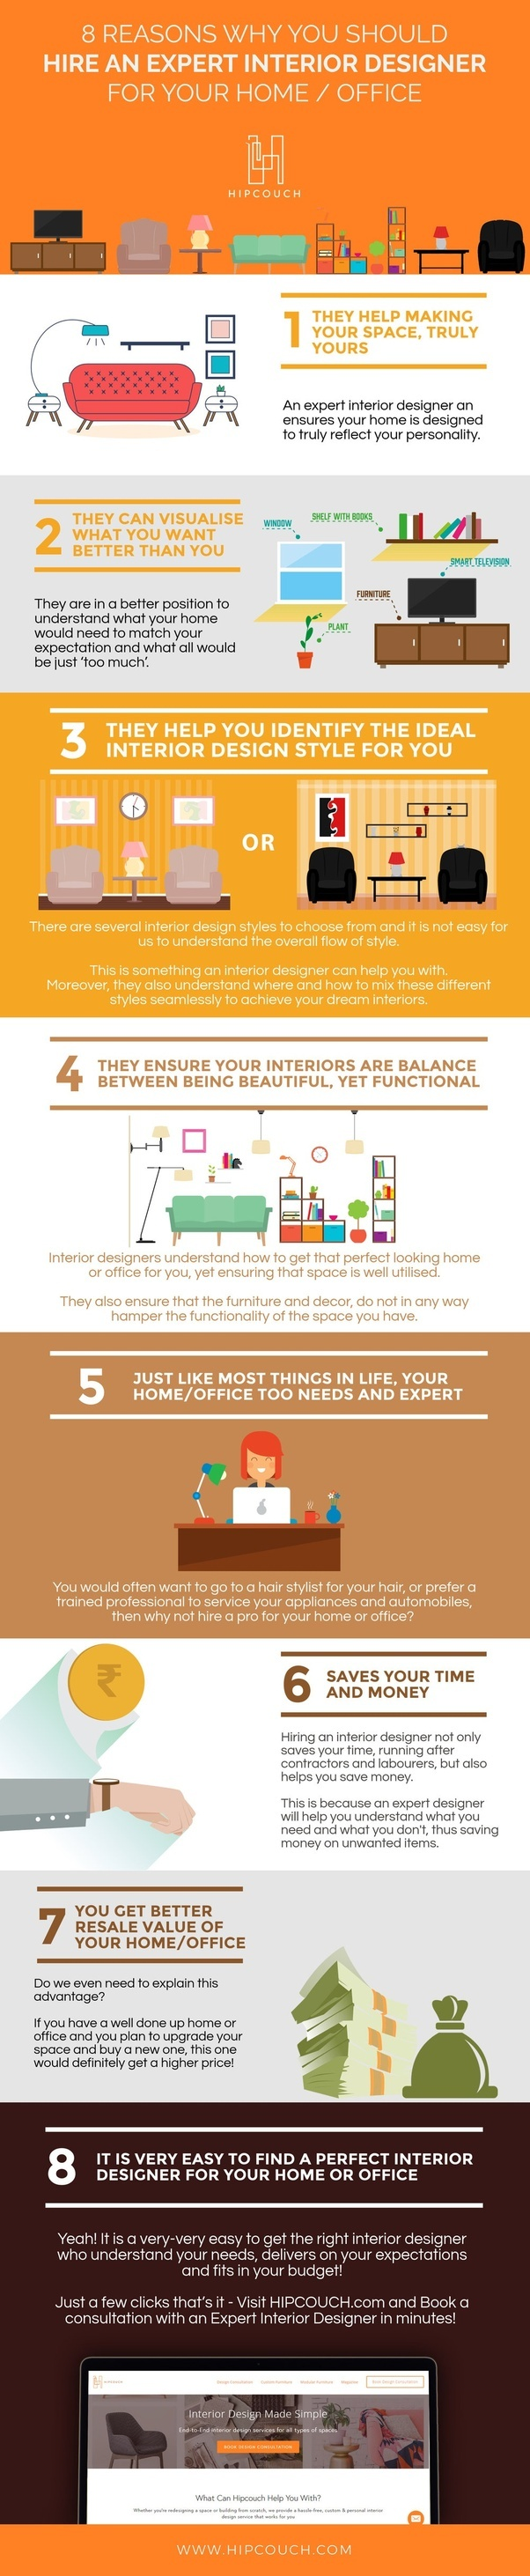 The infographic below gives you a more visual guide as to why hiring an interior designer is good for you and your home.